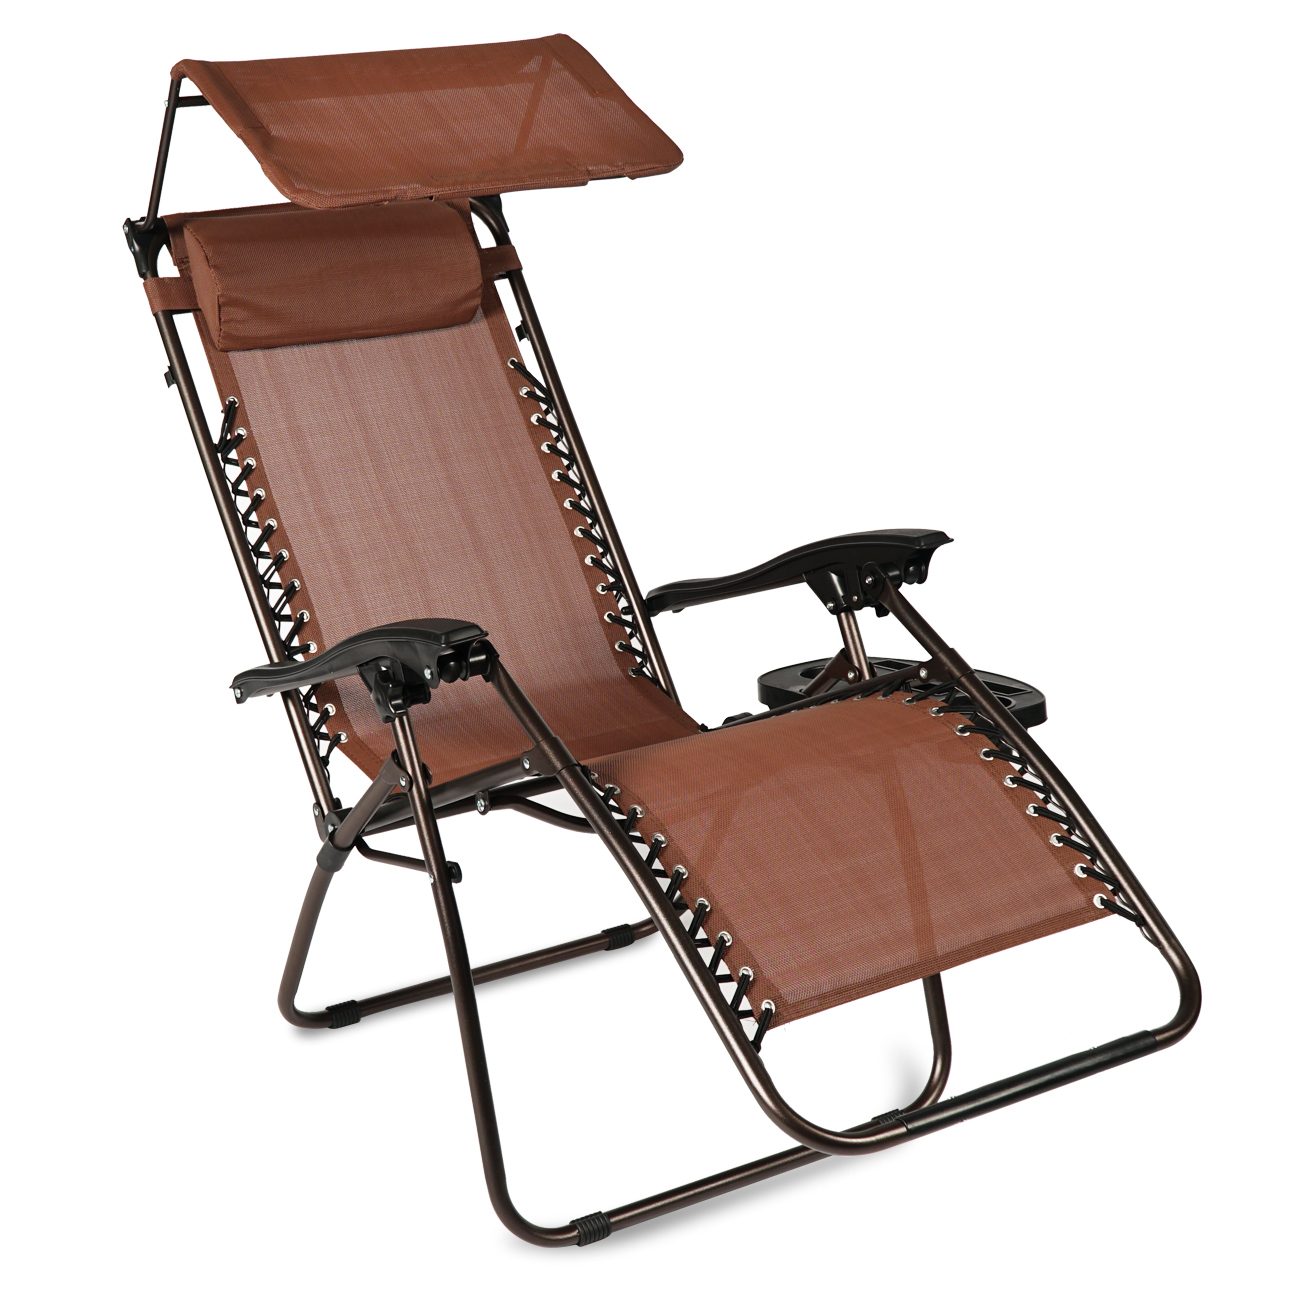 belleze set of (2) zero gravity chair recliner lounge chairs w/ canopy sun shade cup holder, brown